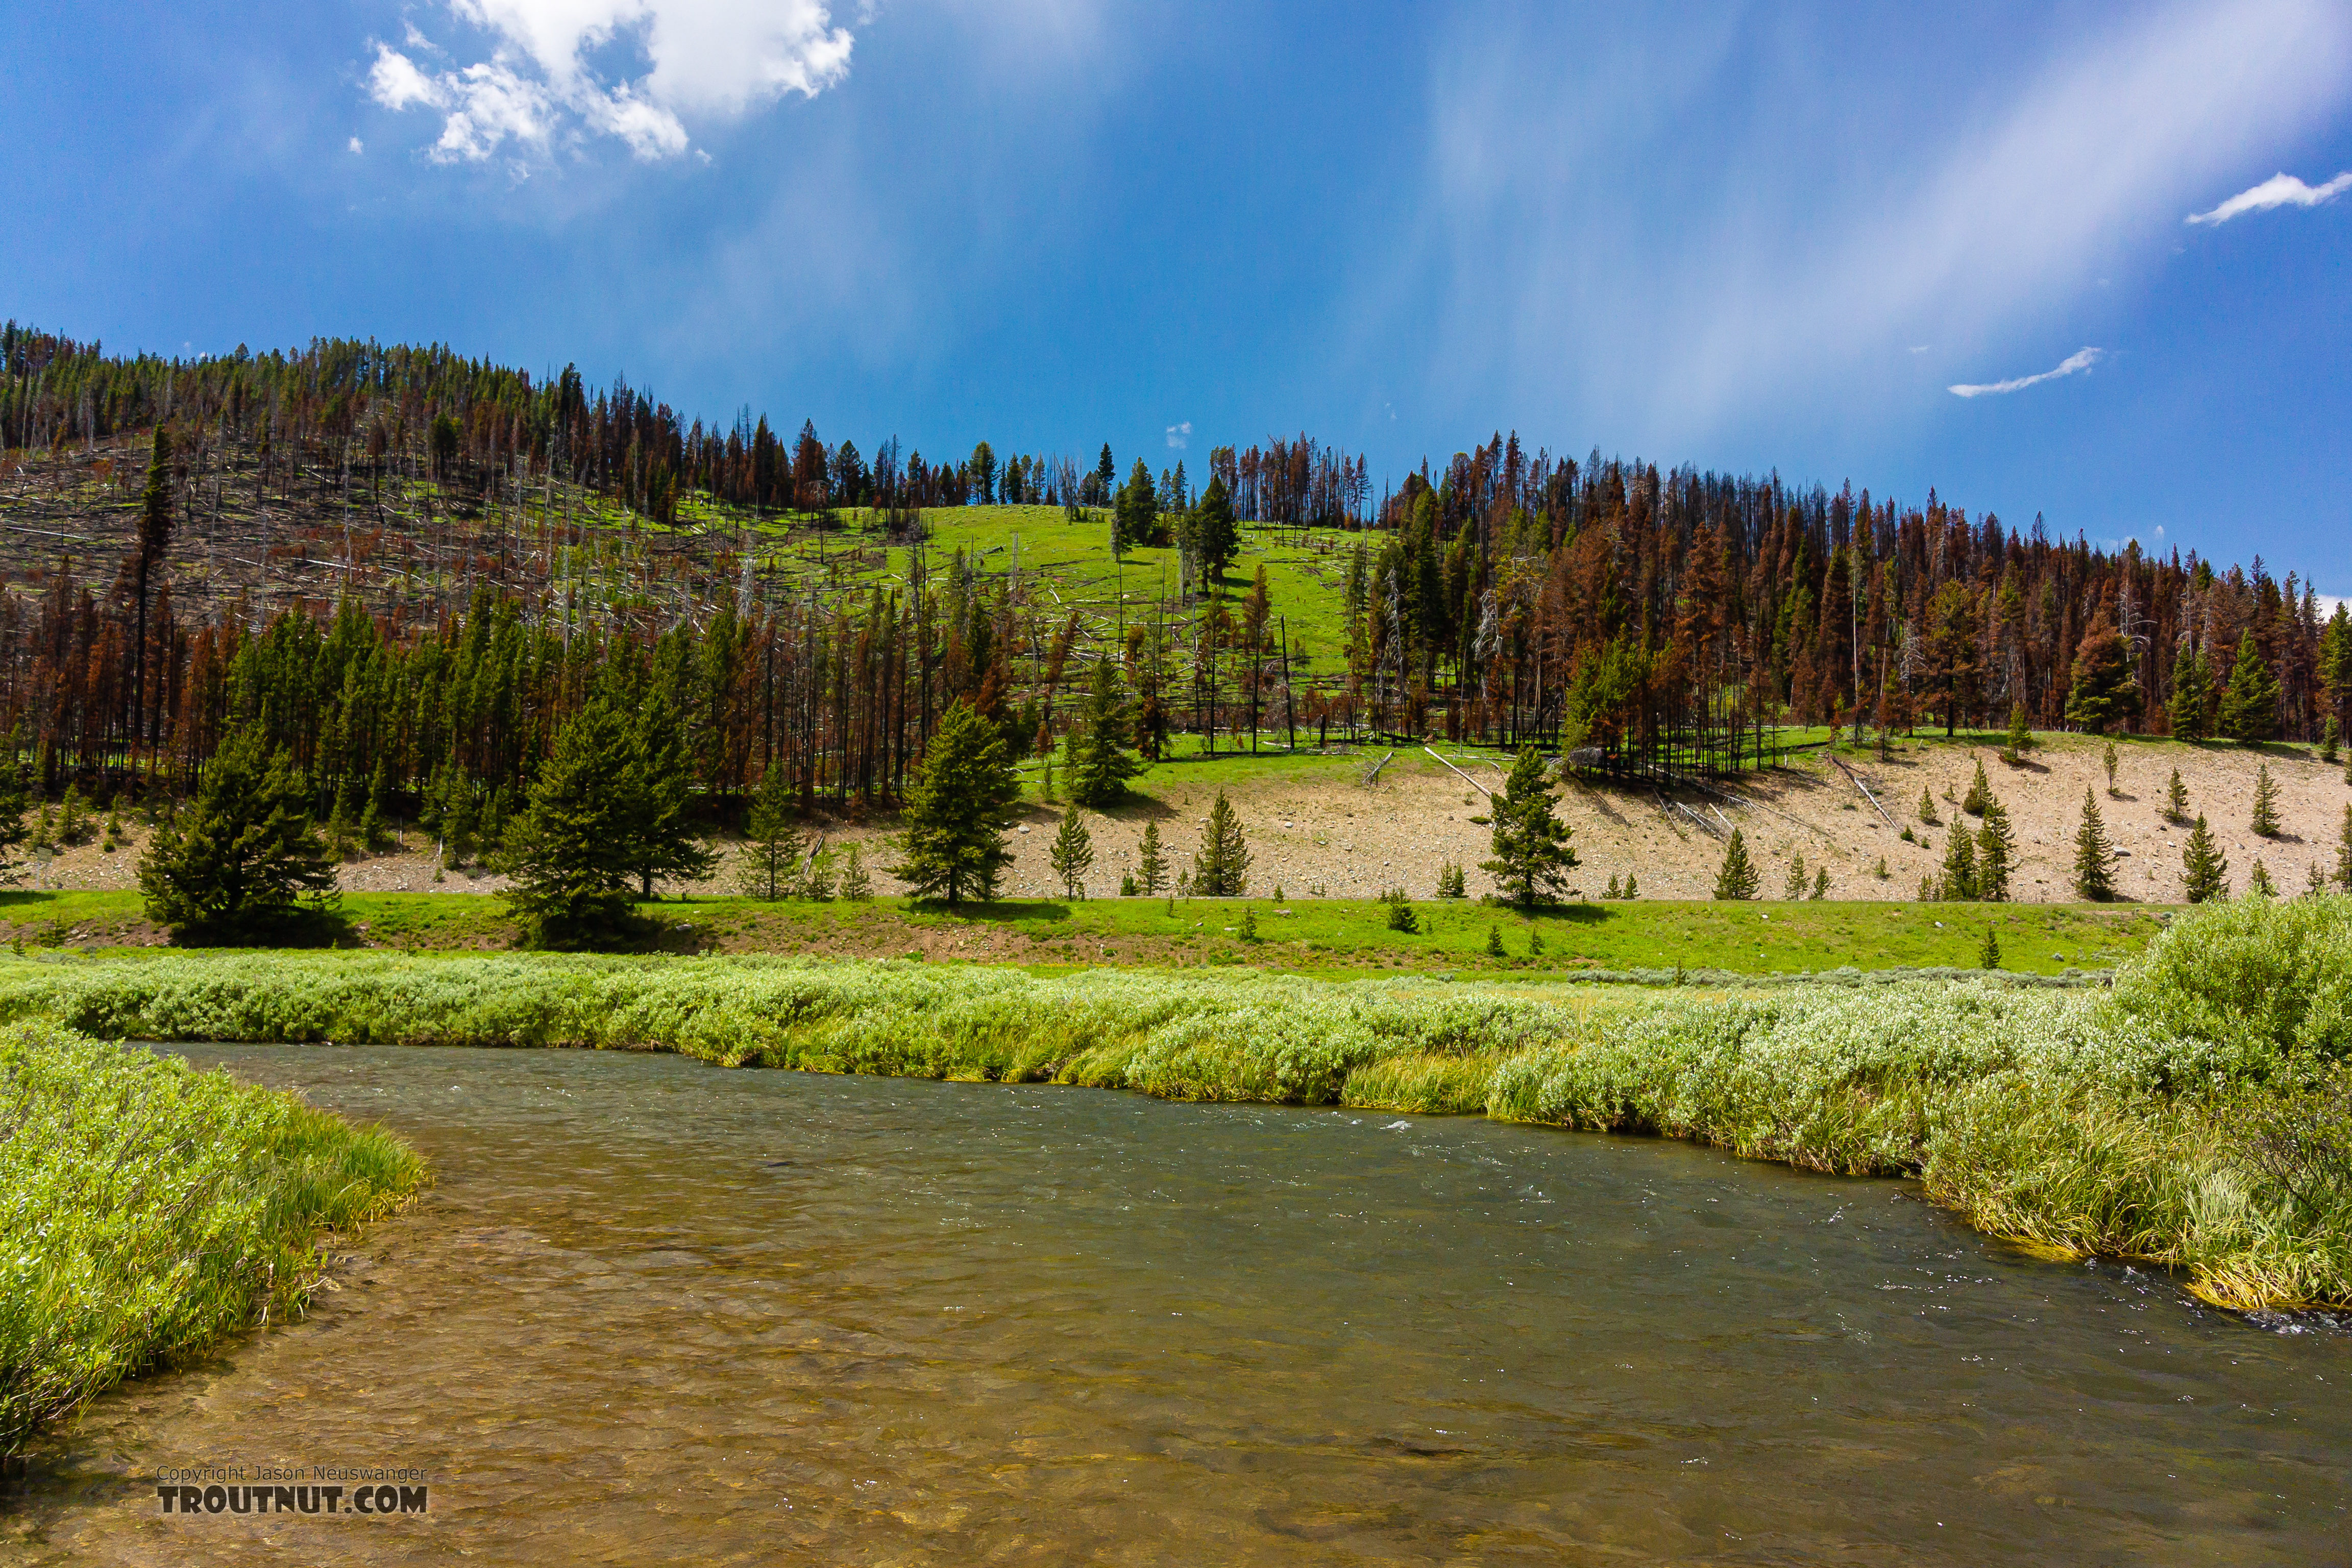 From the Gallatin River in Montana.